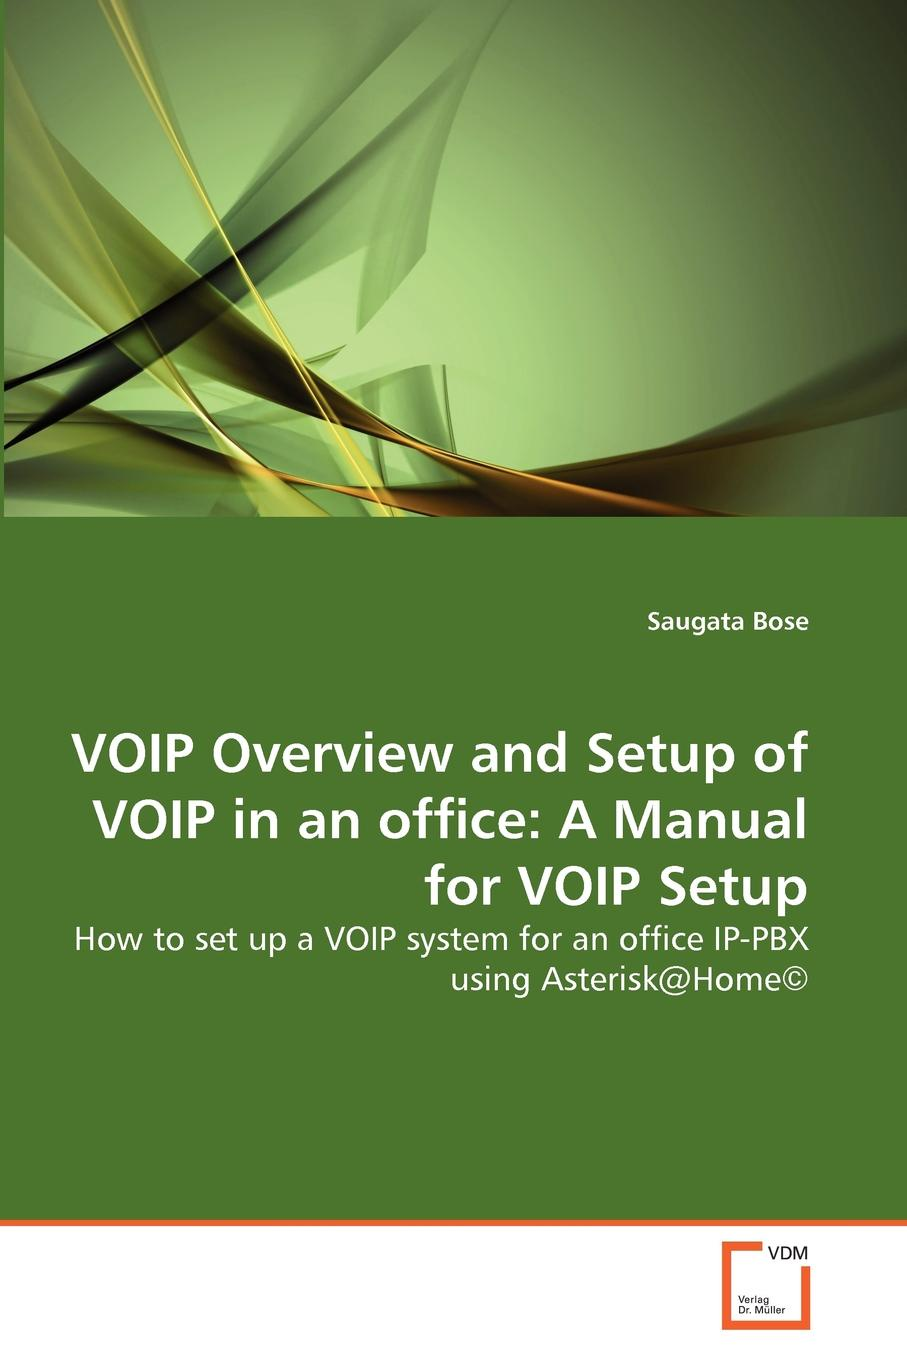 Saugata Bose VOIP Overview and Setup of VOIP in an office. A Manual for VOIP Setup fast free shipping unlocked linksys spa3000 spa 3000 voip fxs voip phone adapter voice ip phone adapter